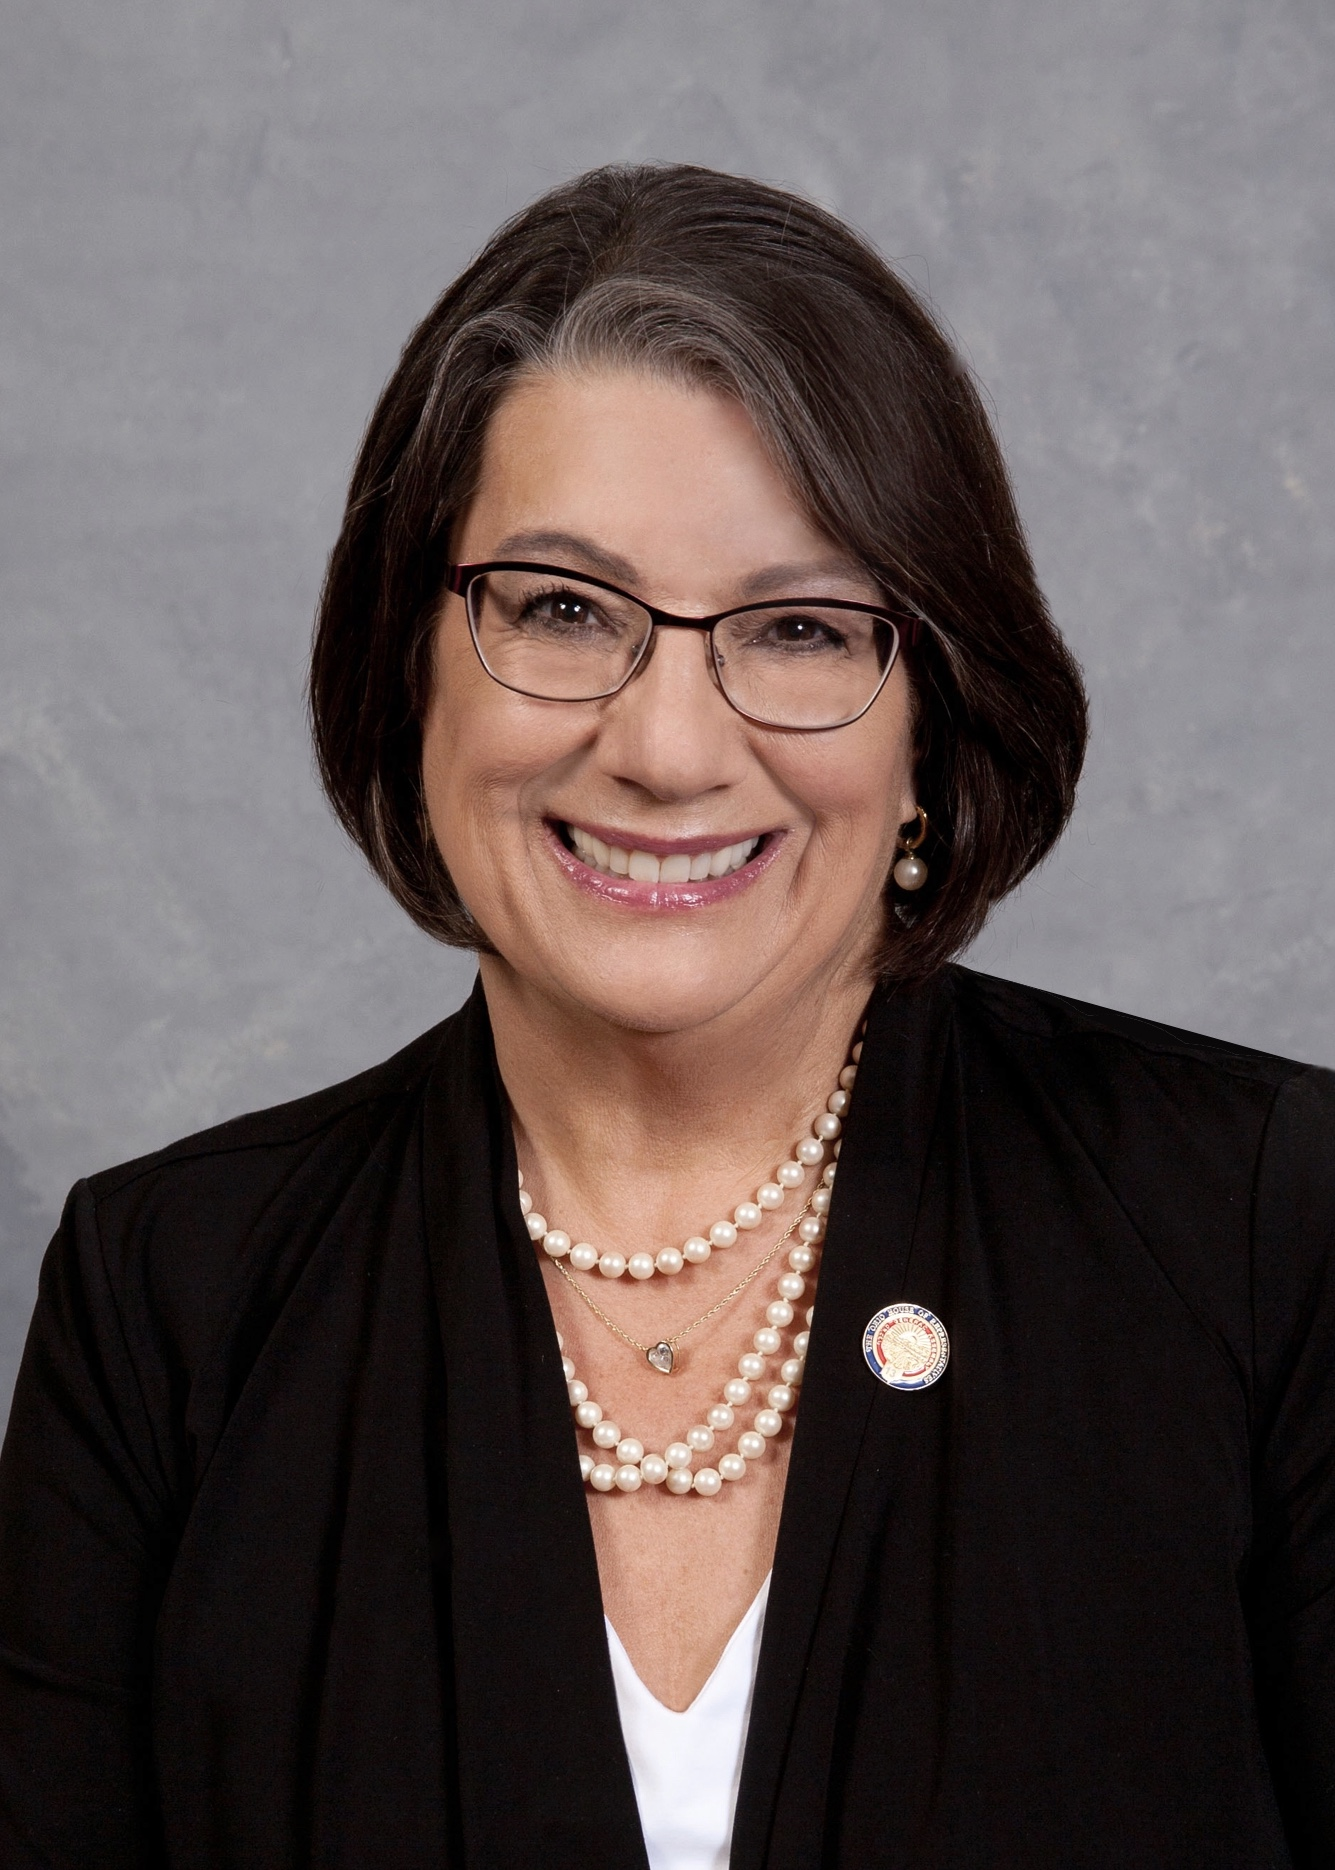 Nickie J. Antonio <br/> State Senator - District 23 <br/> The Ohio Senate